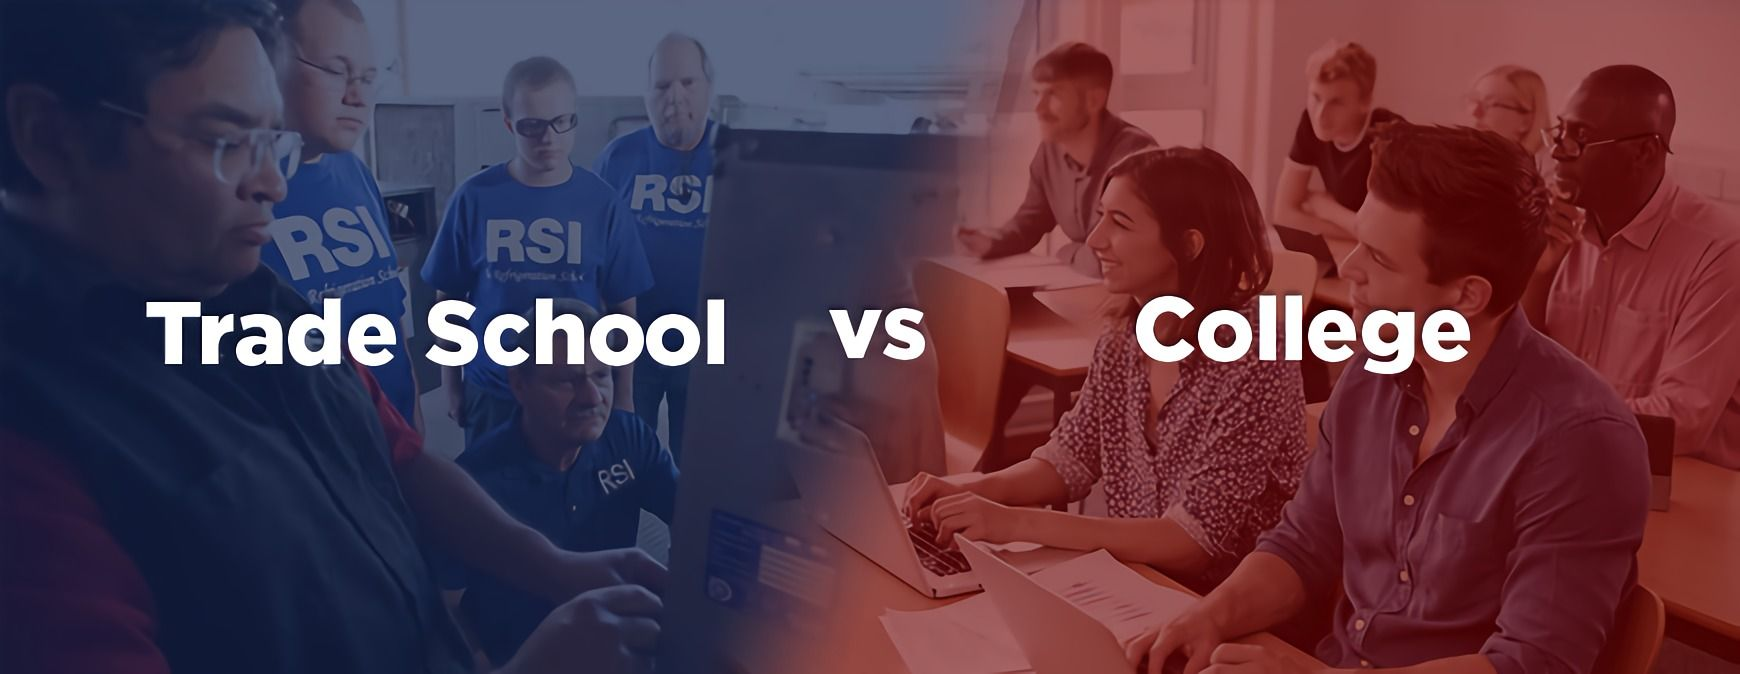 trade school vs college pros and cons